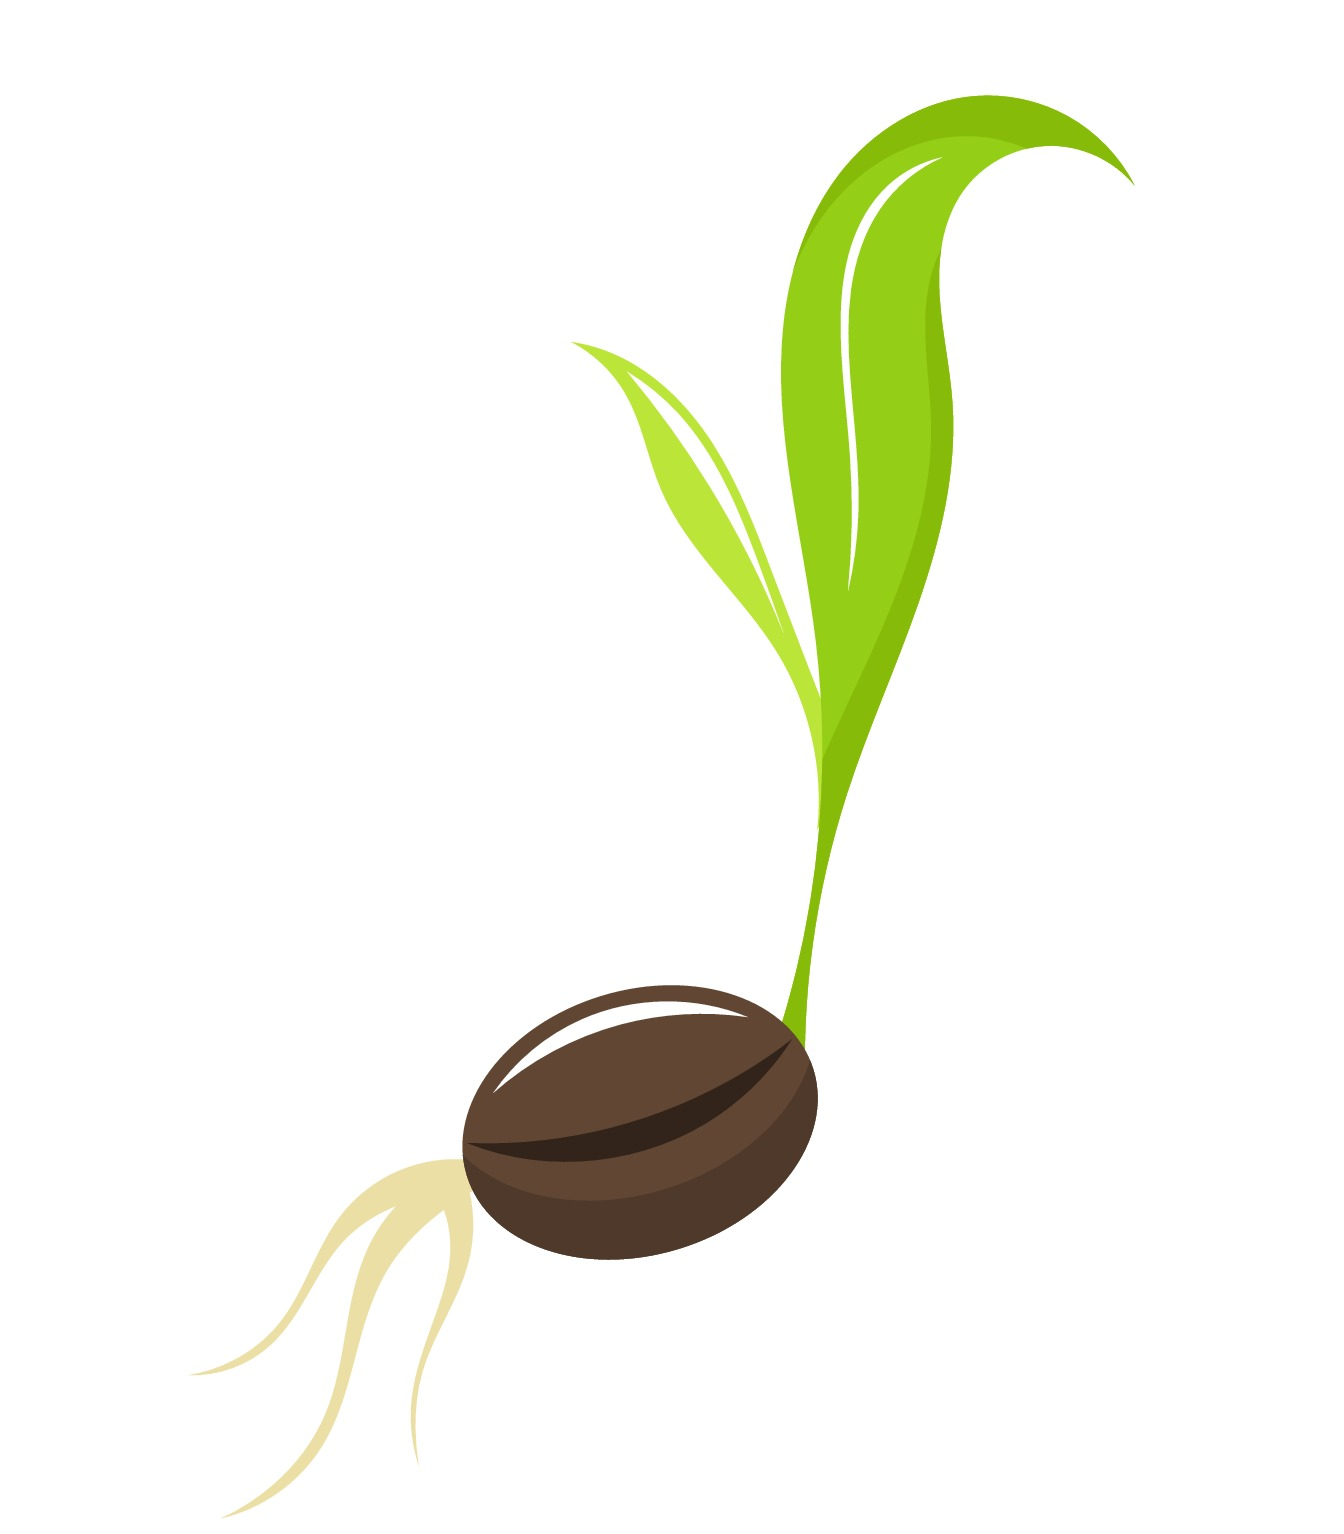 Seed Clipart 20 Free Cliparts